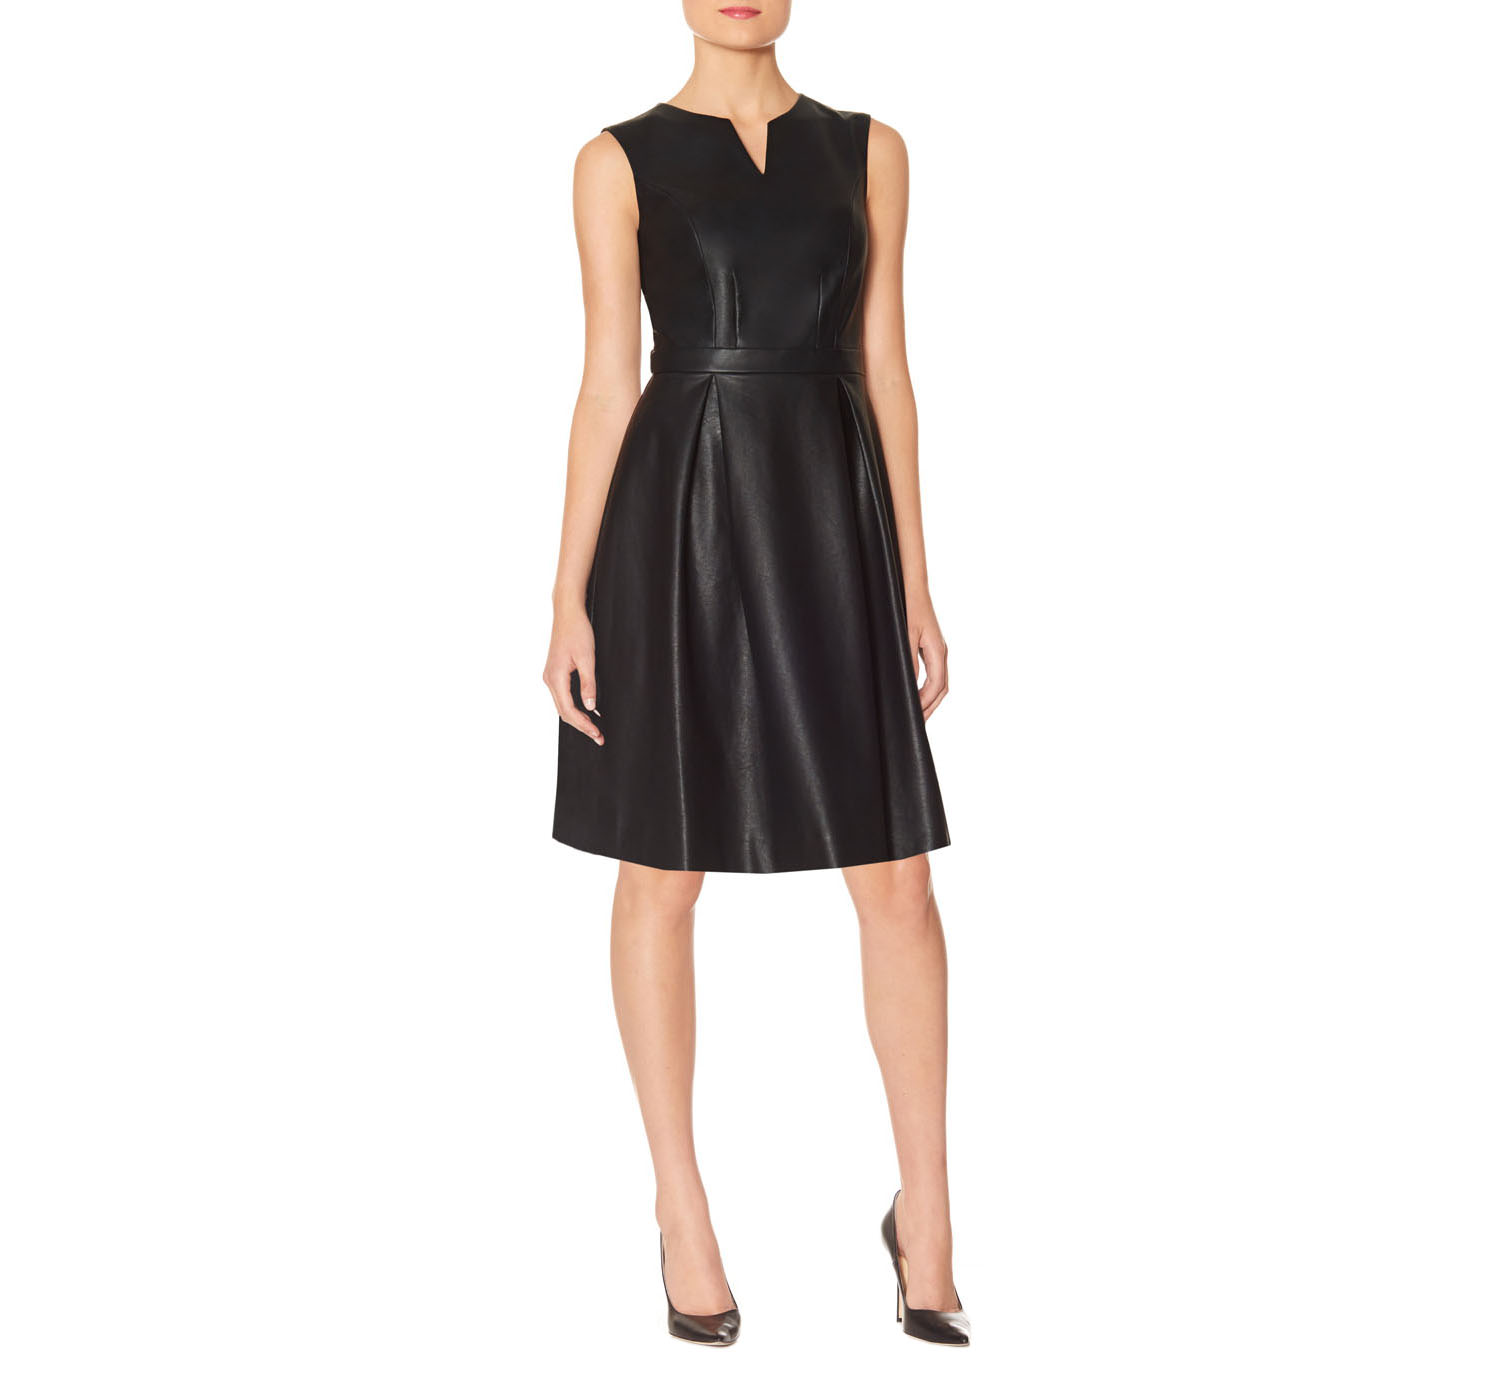 The Limited Faux-Leather Dress